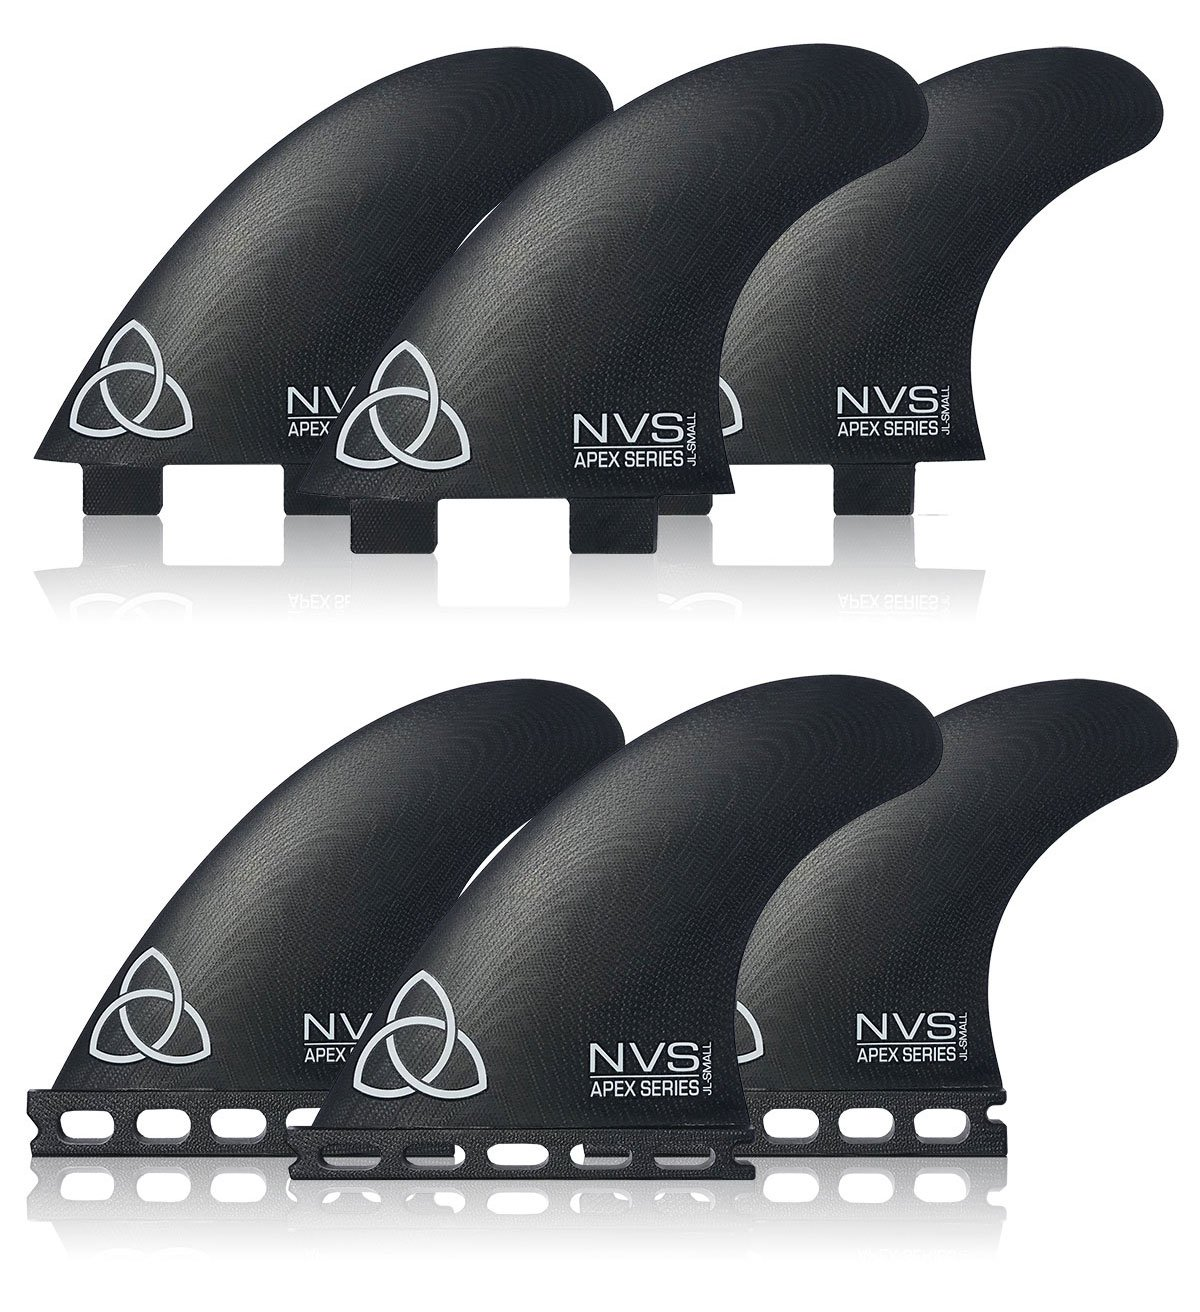 Naked Viking Surf Small JL Apex Series Surfboard Fins, (Set of 3) FCS & Futures